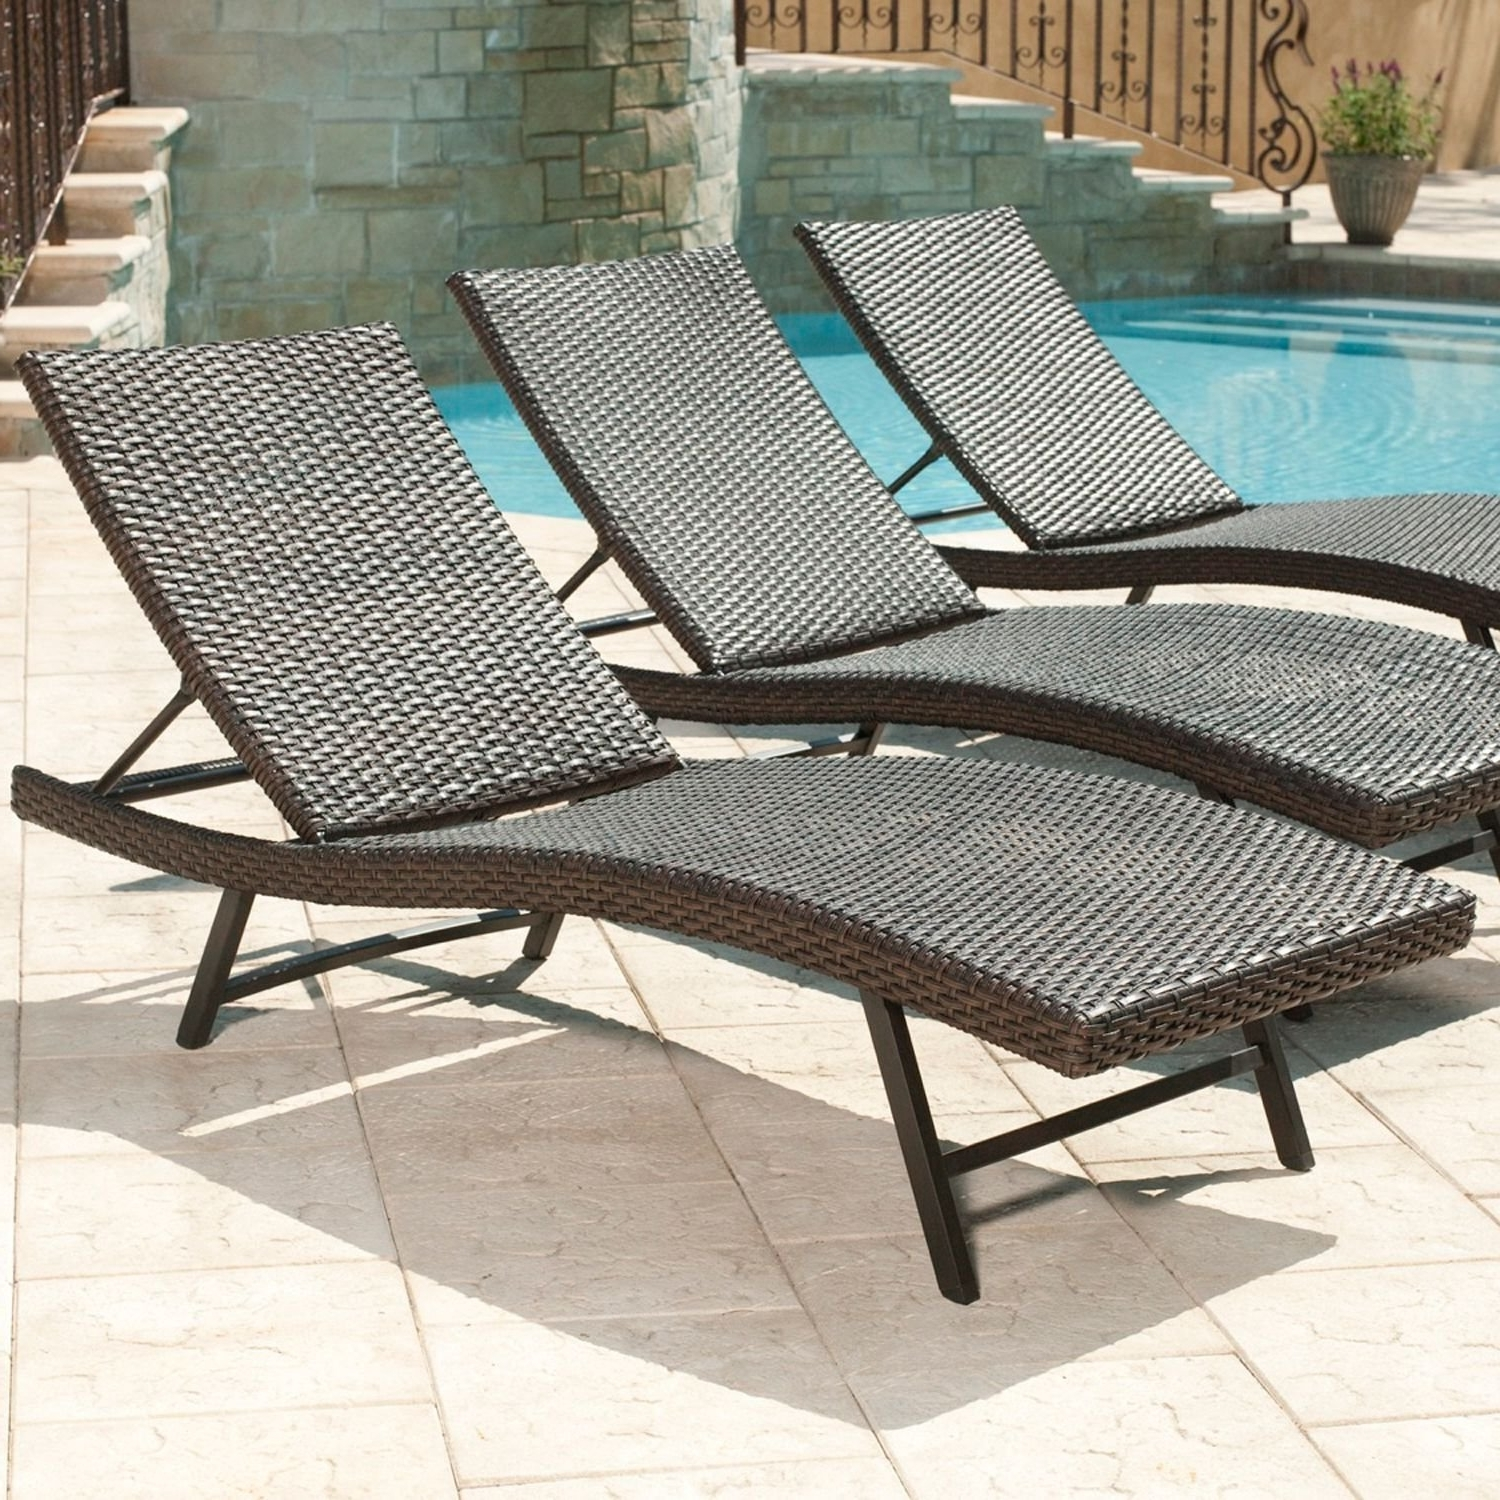 Amazon: Member's Mark« Heritage Chaise Lounge Chair: Garden Throughout 2018 Sam's Club Chaise Lounge Chairs (View 2 of 15)